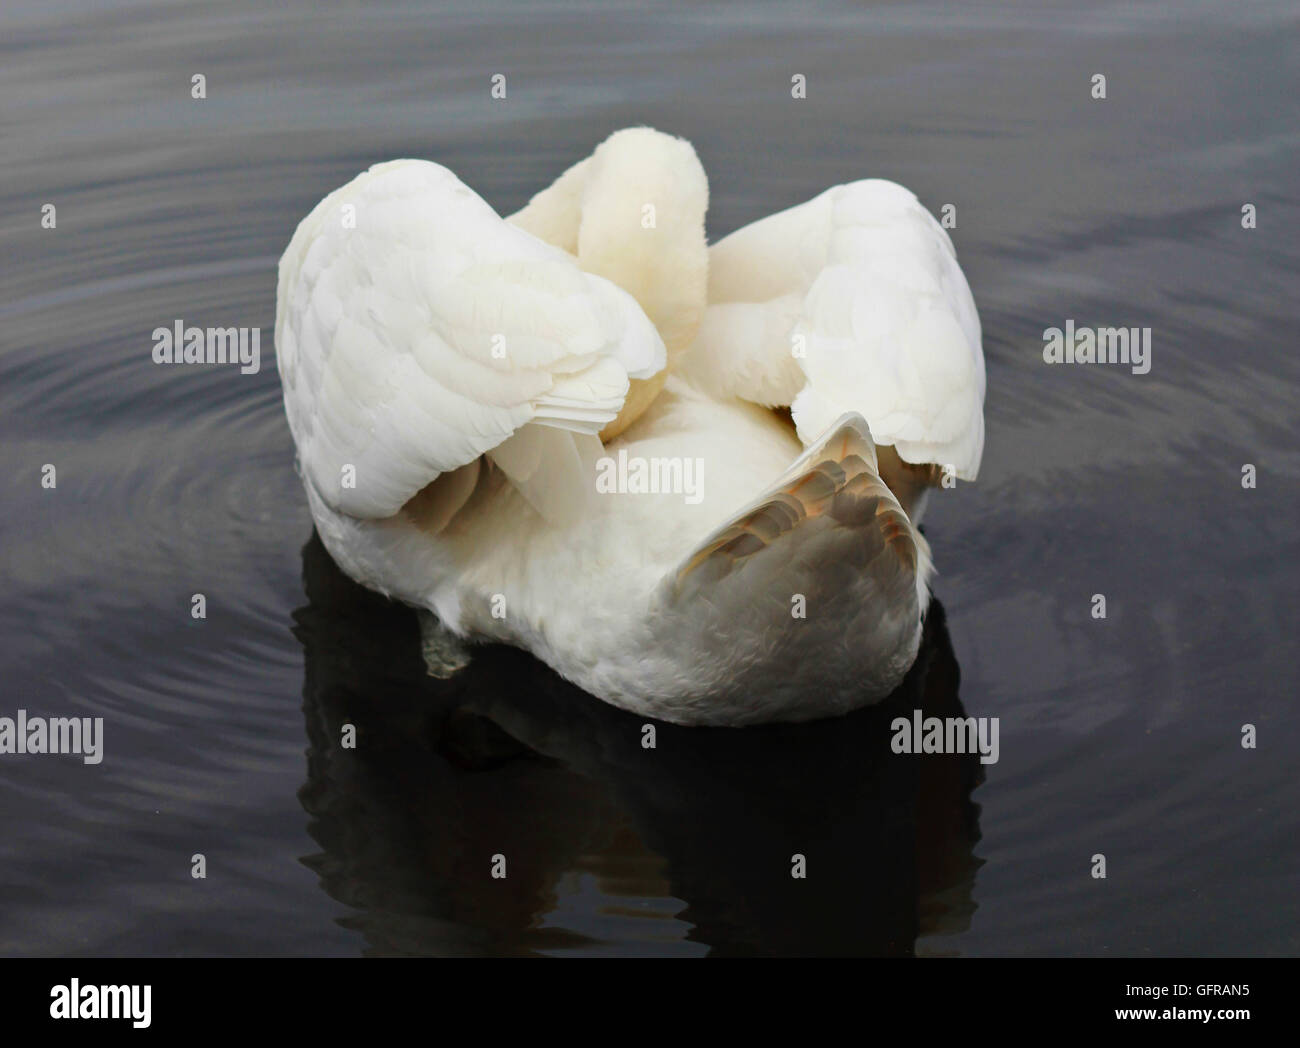 contorted pose of a swan with its neck underneath its wing, viewed from behind - Stock Image